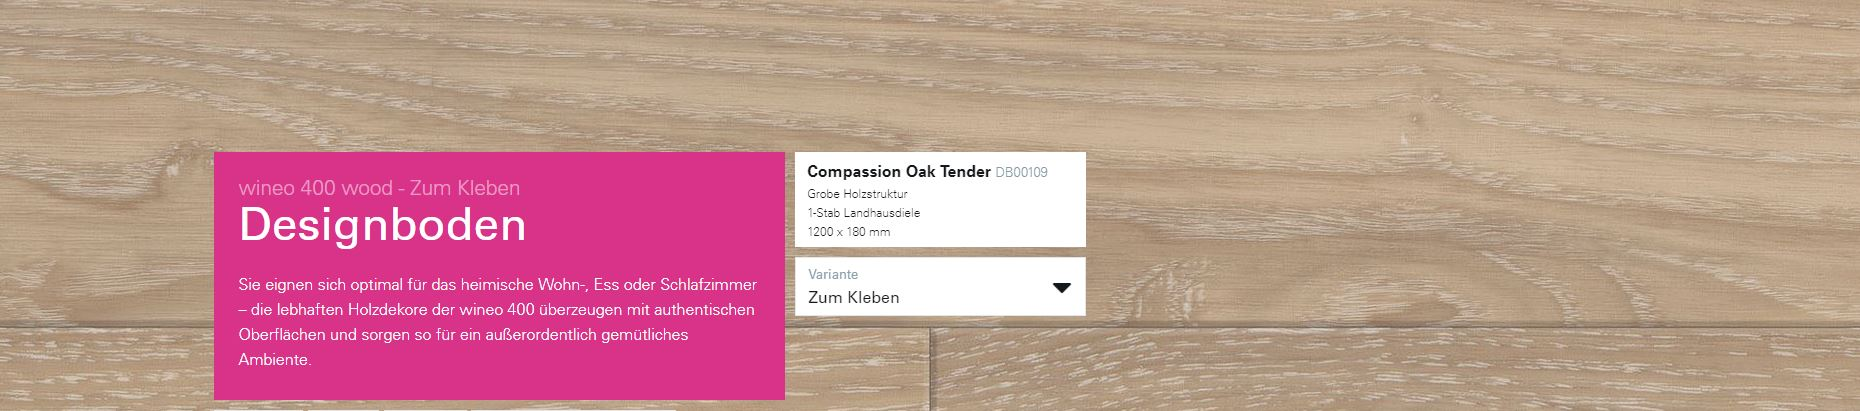 Wineo 400 Compassion Oak Light DB00109 @ Boden4You.com Design Bodenbelag günstig und Trsuted Shop sicher kaufen